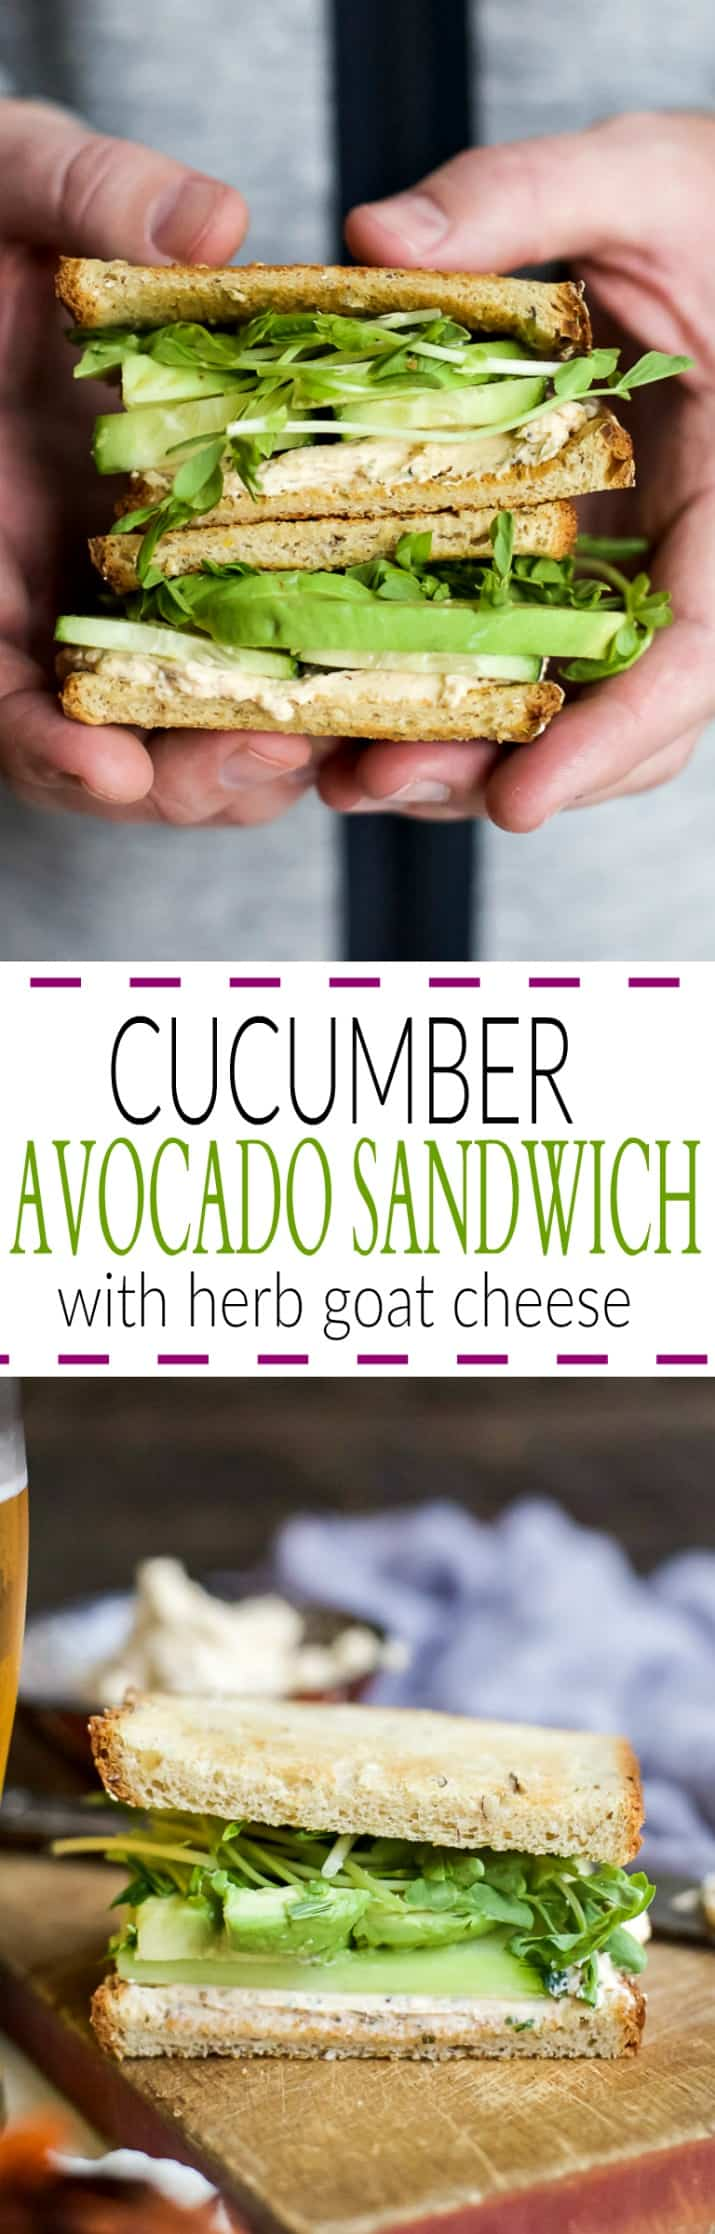 Cucumber Avocado Sandwich with Herb Goat Cheese recipe collage